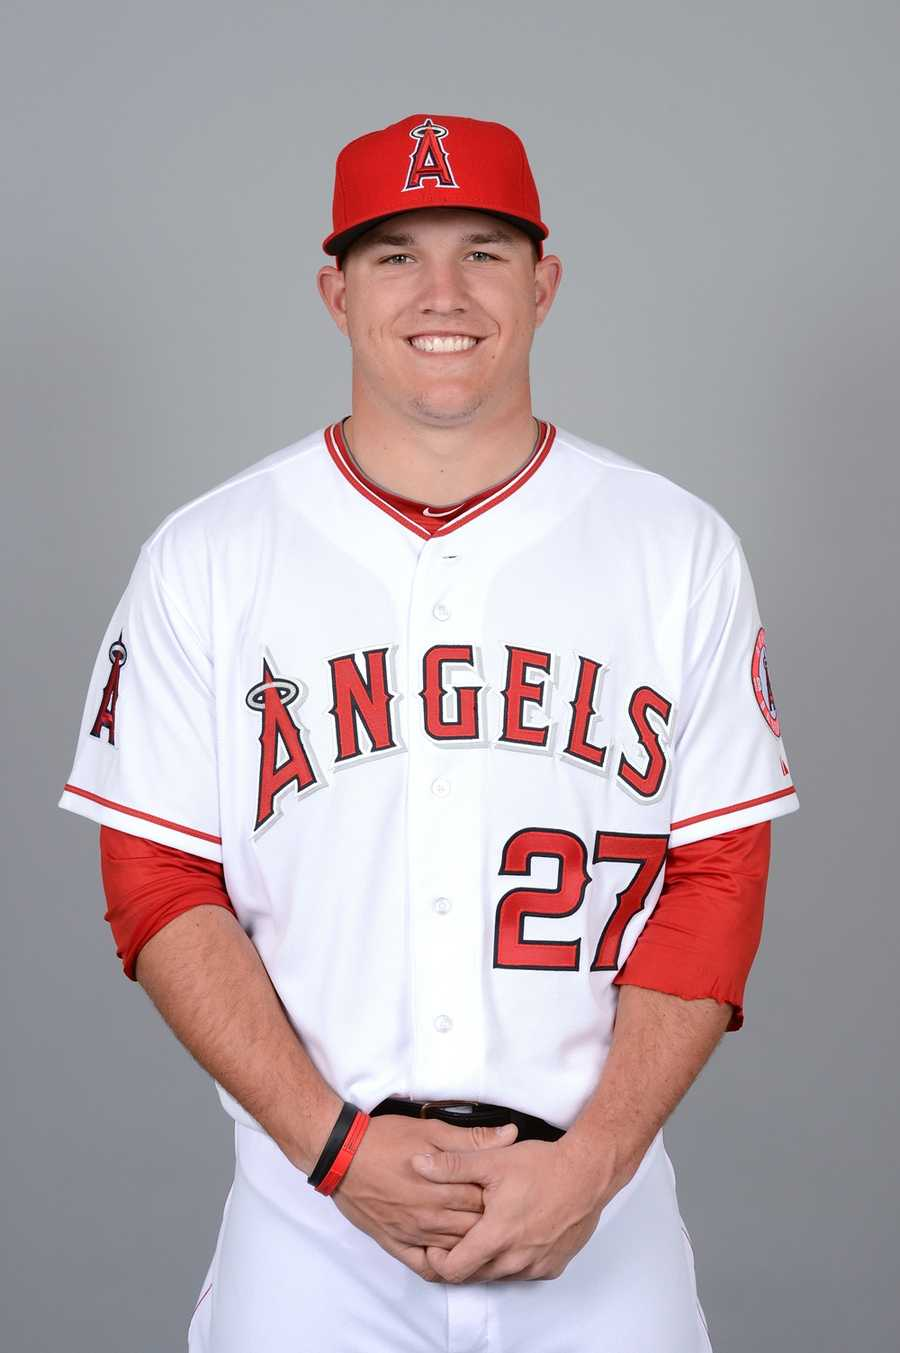 14) Mike Trout, Los Angeles Angels of Anaheim